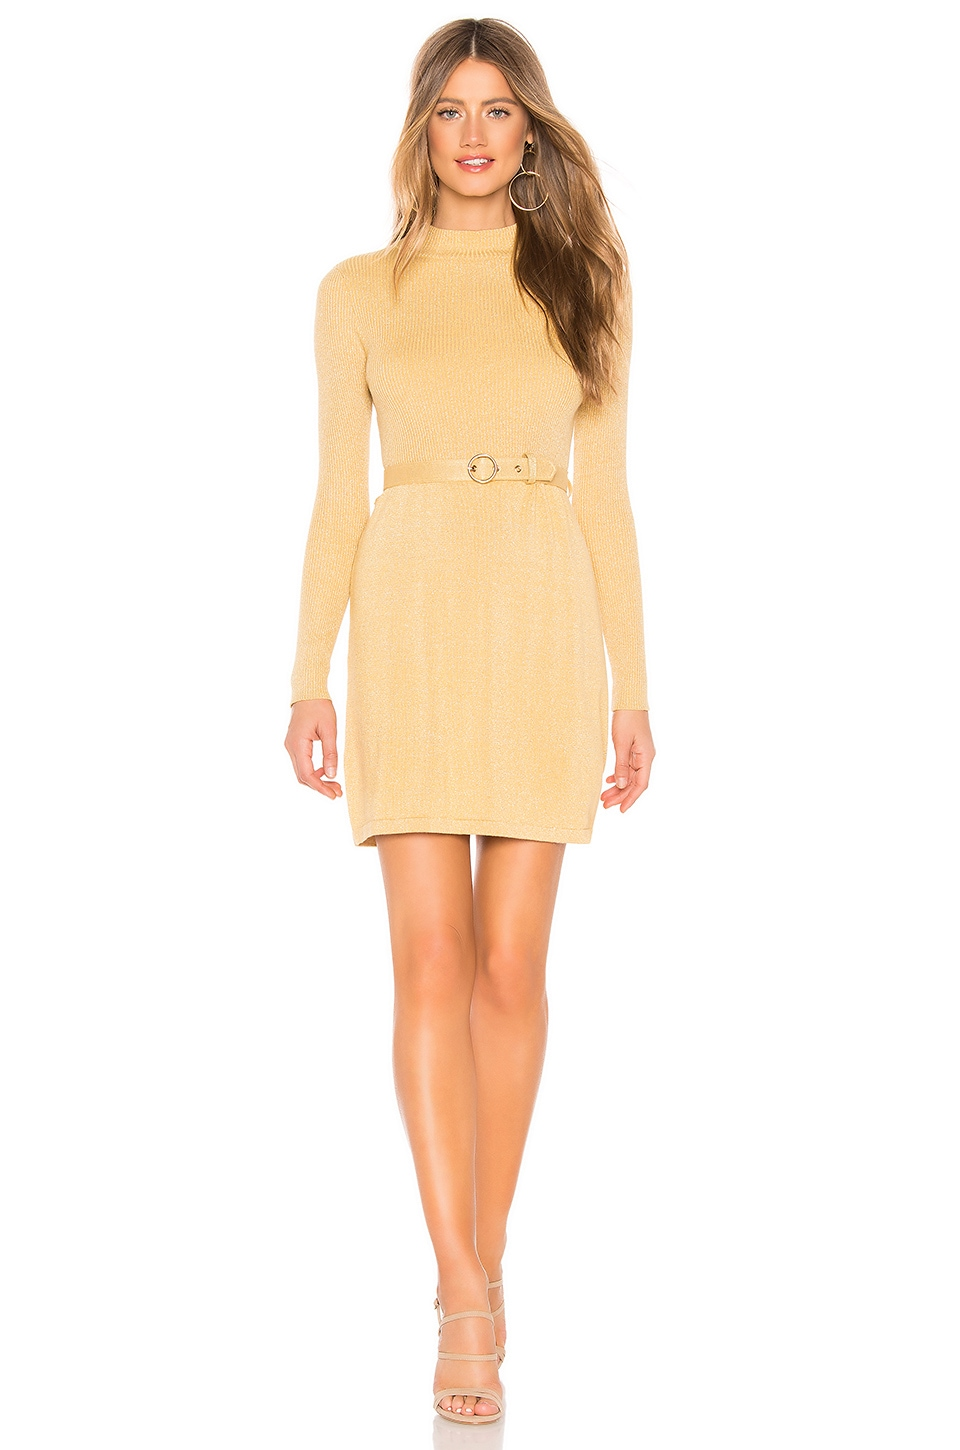 Free People French Girl Mini Dress in Gold